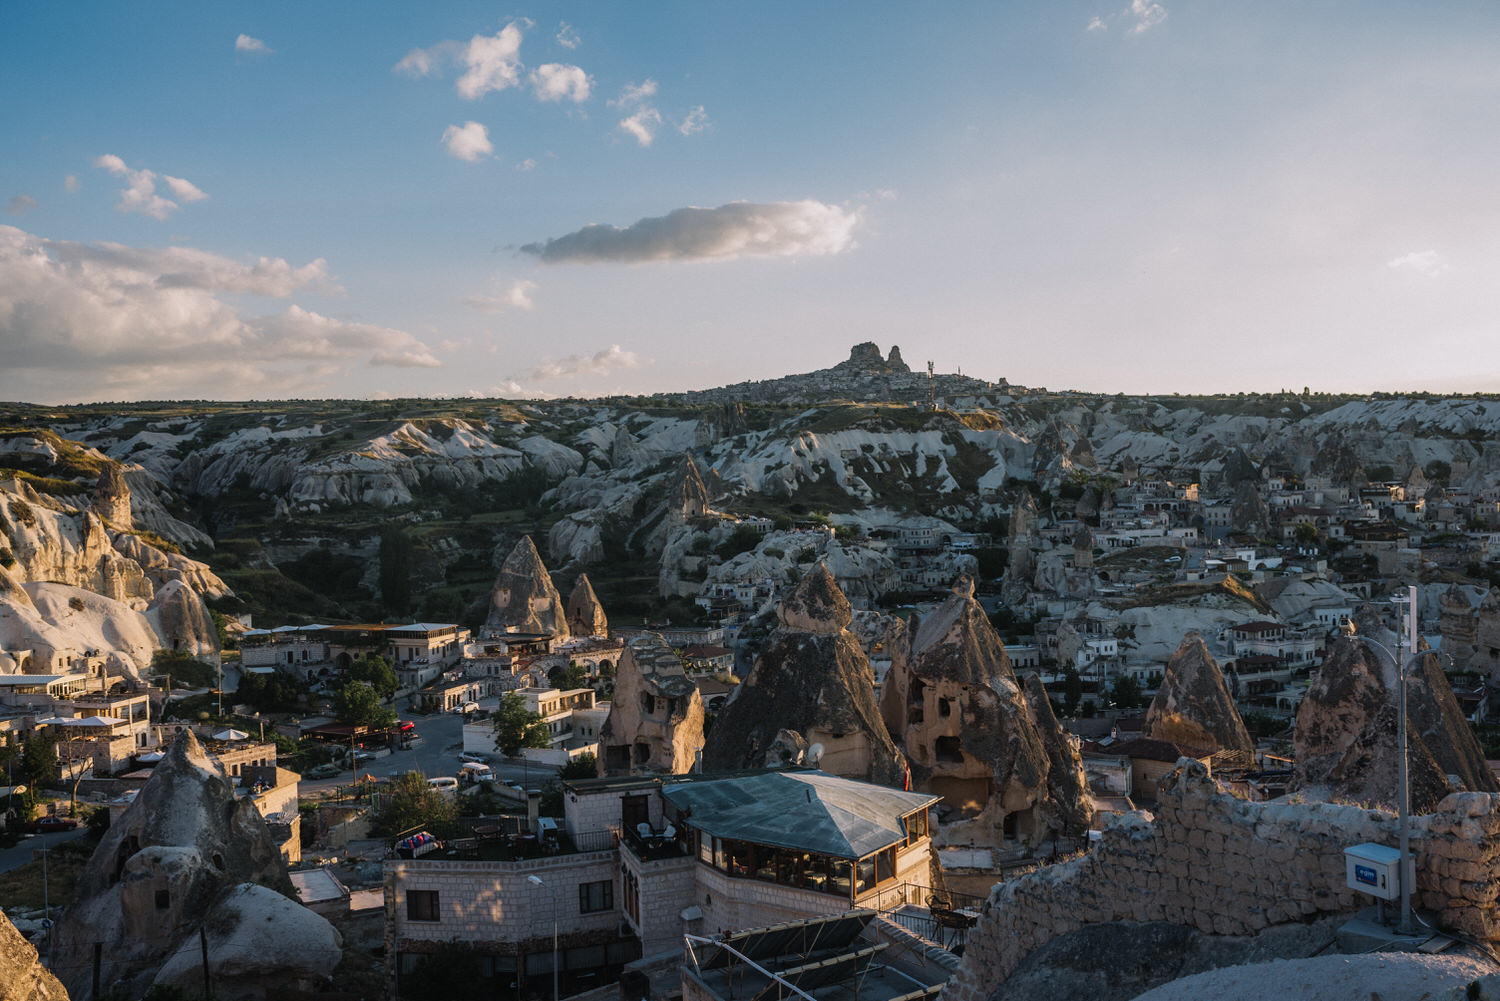 PhotographyS&S-Wedding-Photographer-Cappadocia-2017-263